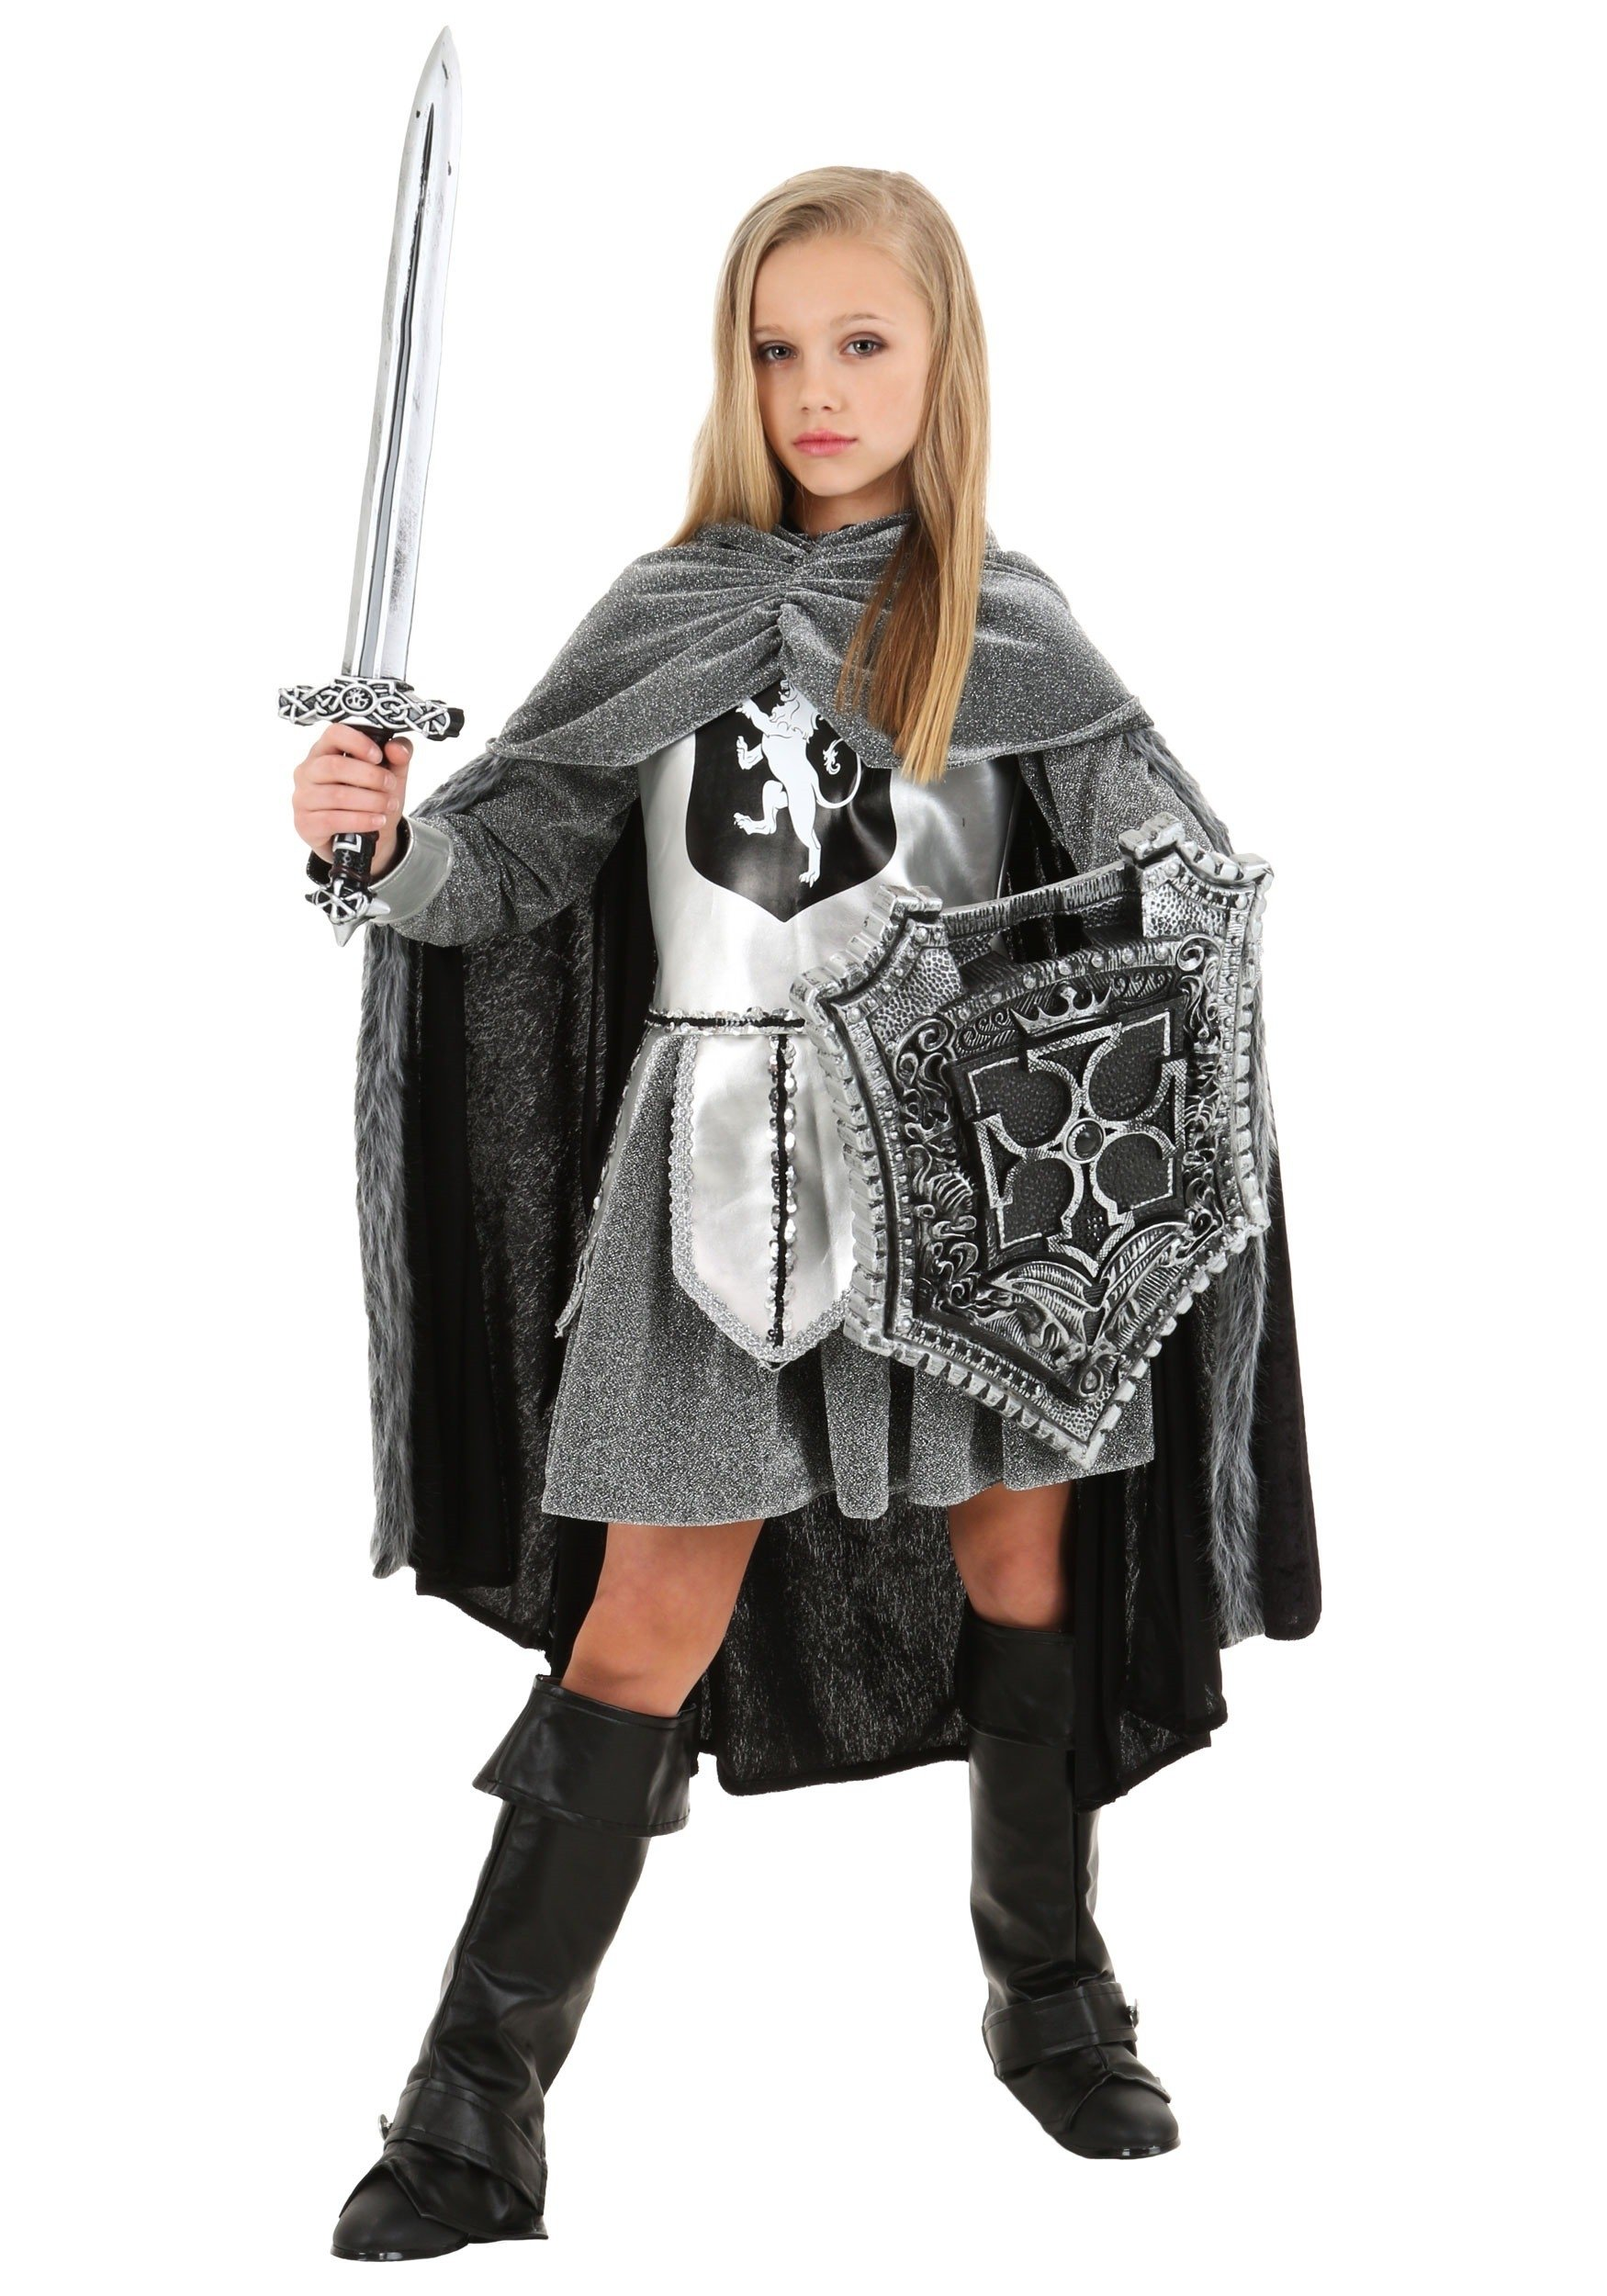 10 Famous Joan Of Arc Costume Ideas knight costumes medieval knight halloween costumes 2021